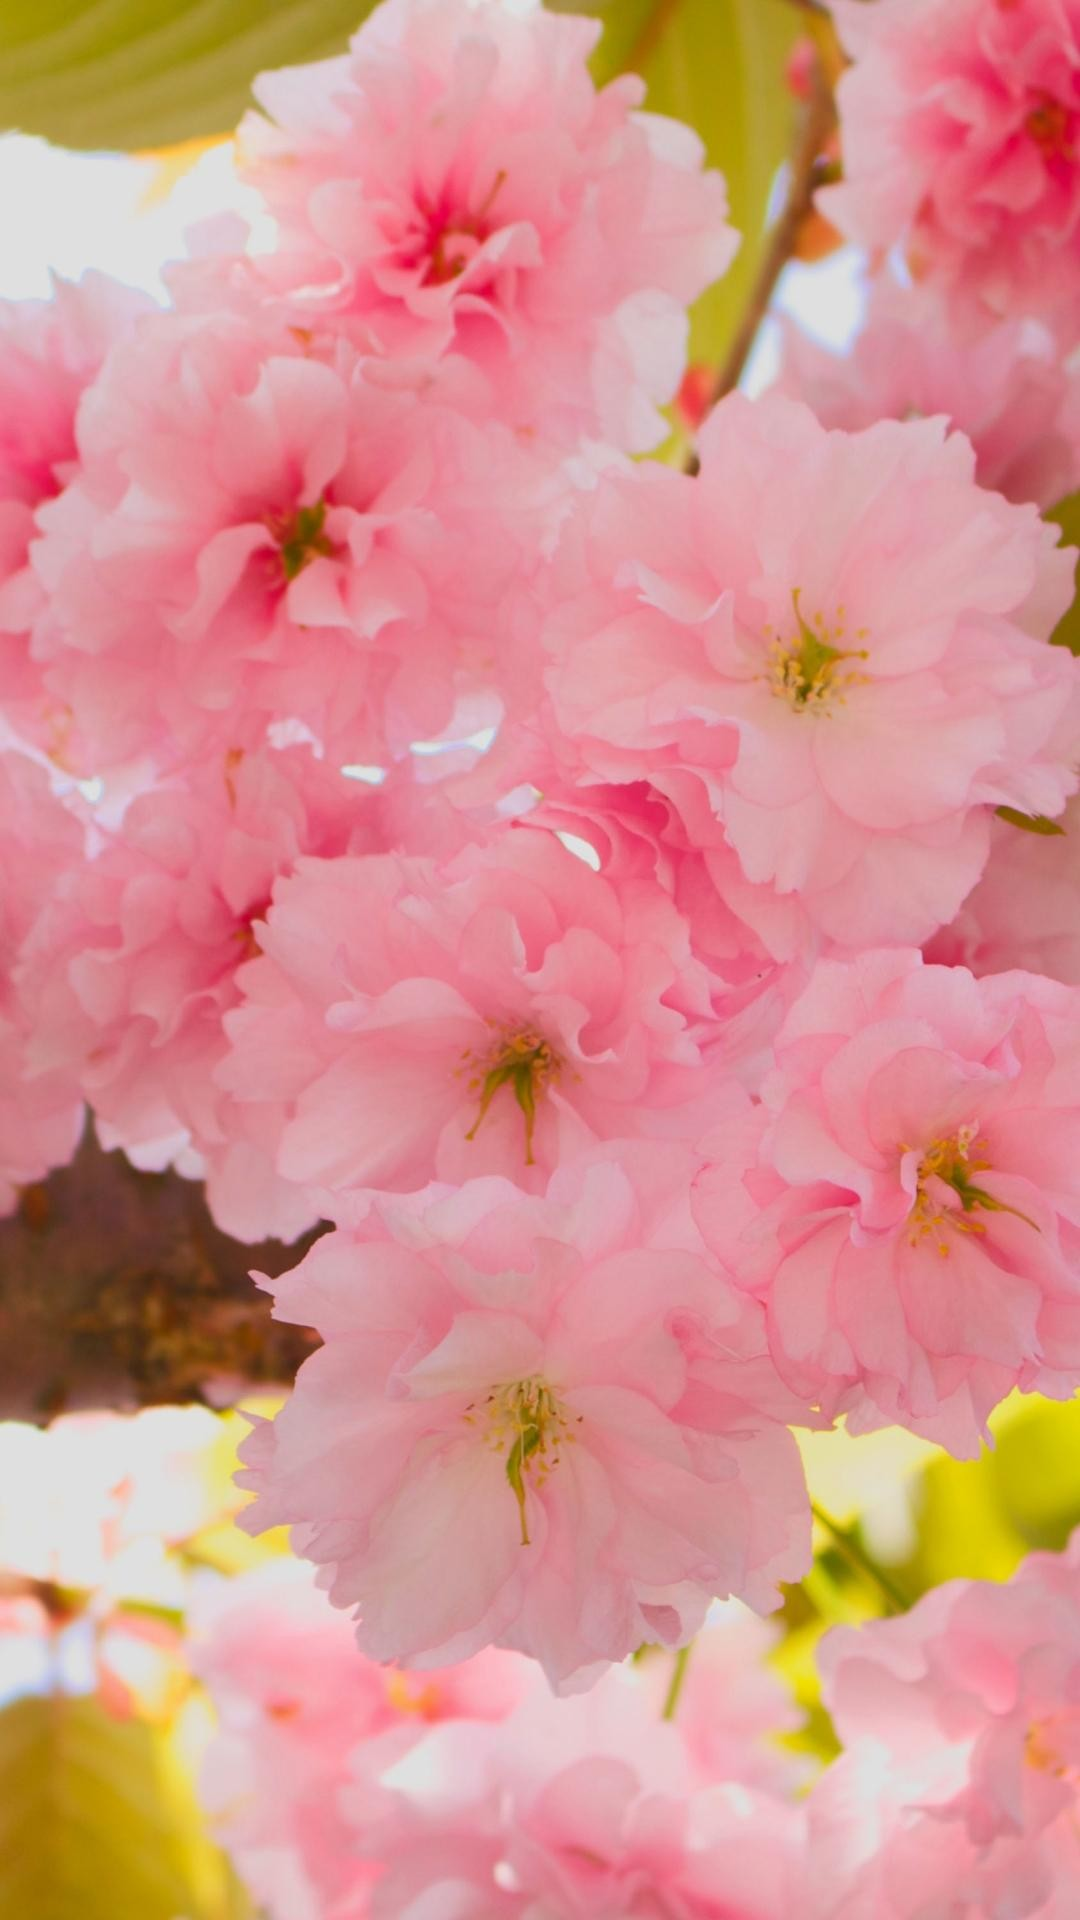 wallpaper.wiki-Cherry-Blossom-iPhone-HD-Wallpaper-PIC-